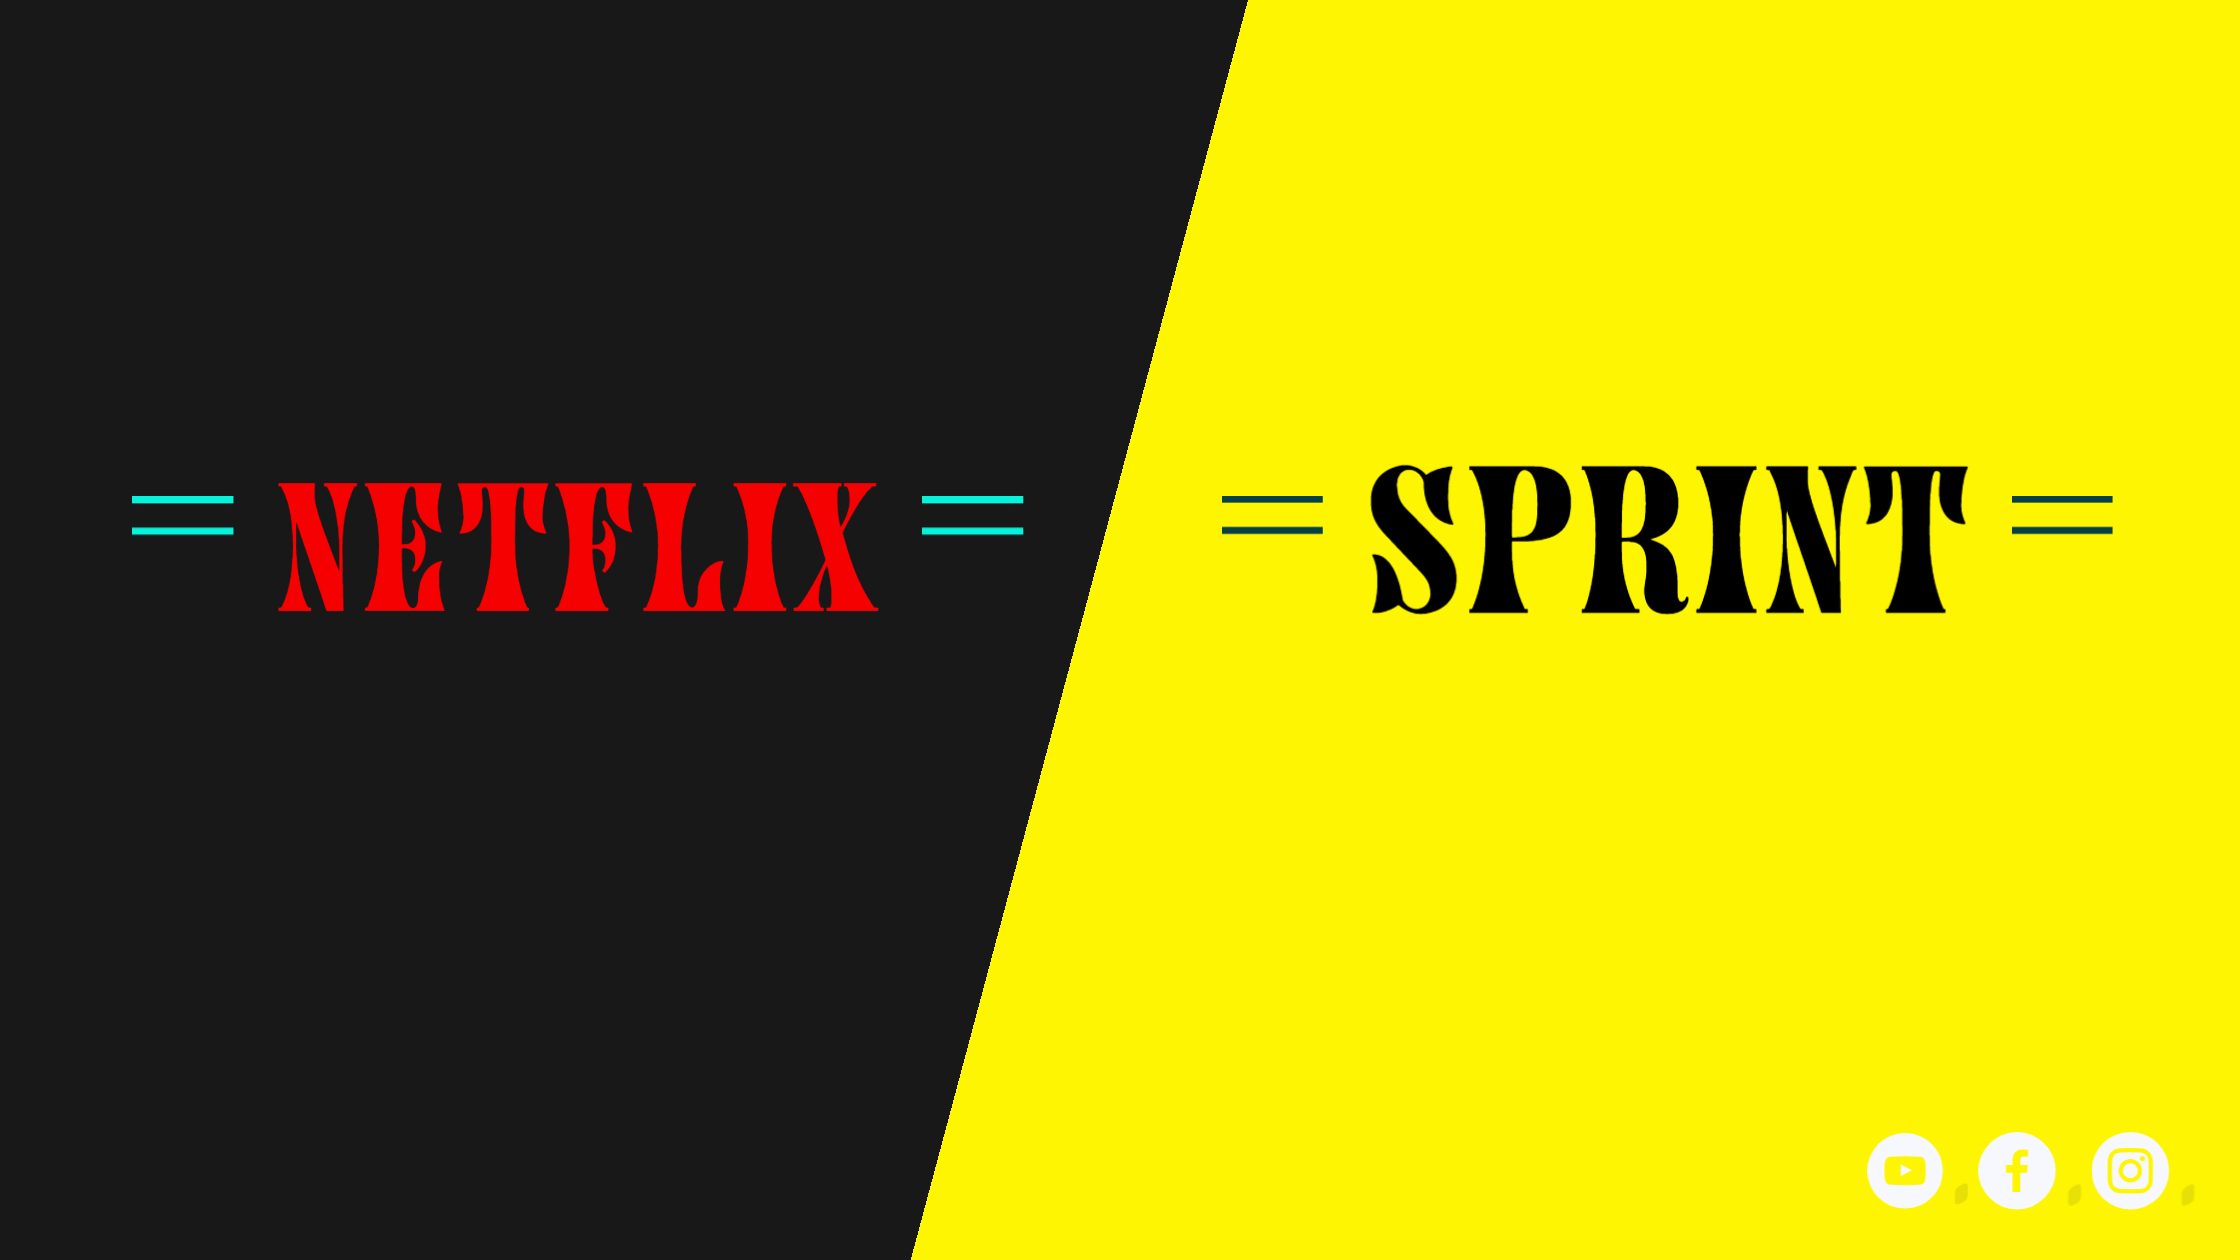 is netflix free for sprint customers